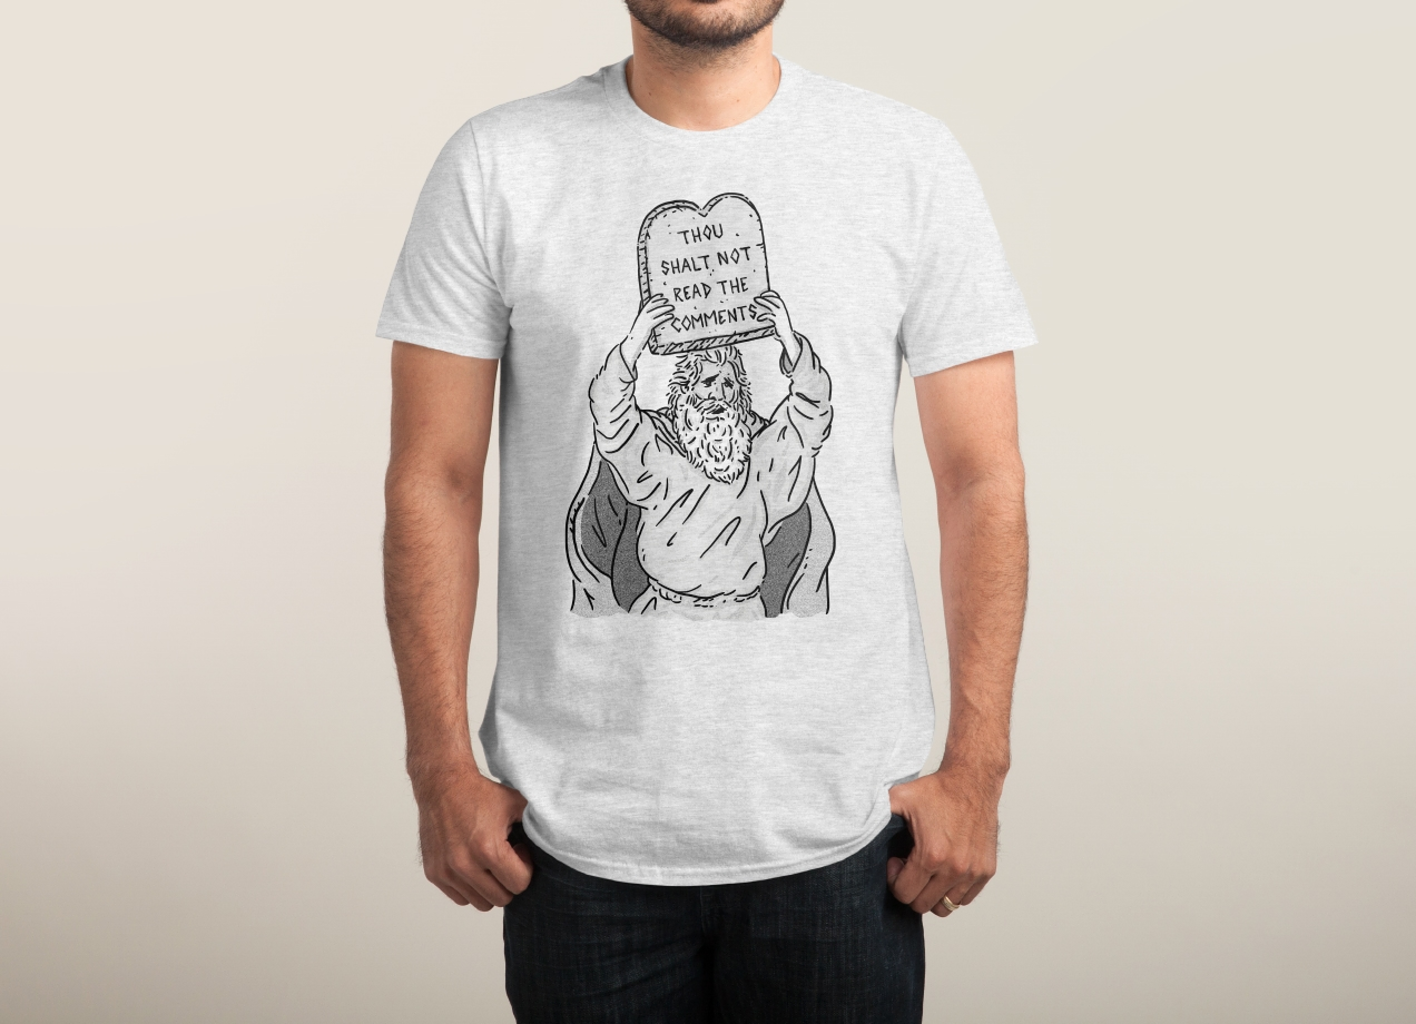 Threadless: The first Commandment of the Internet